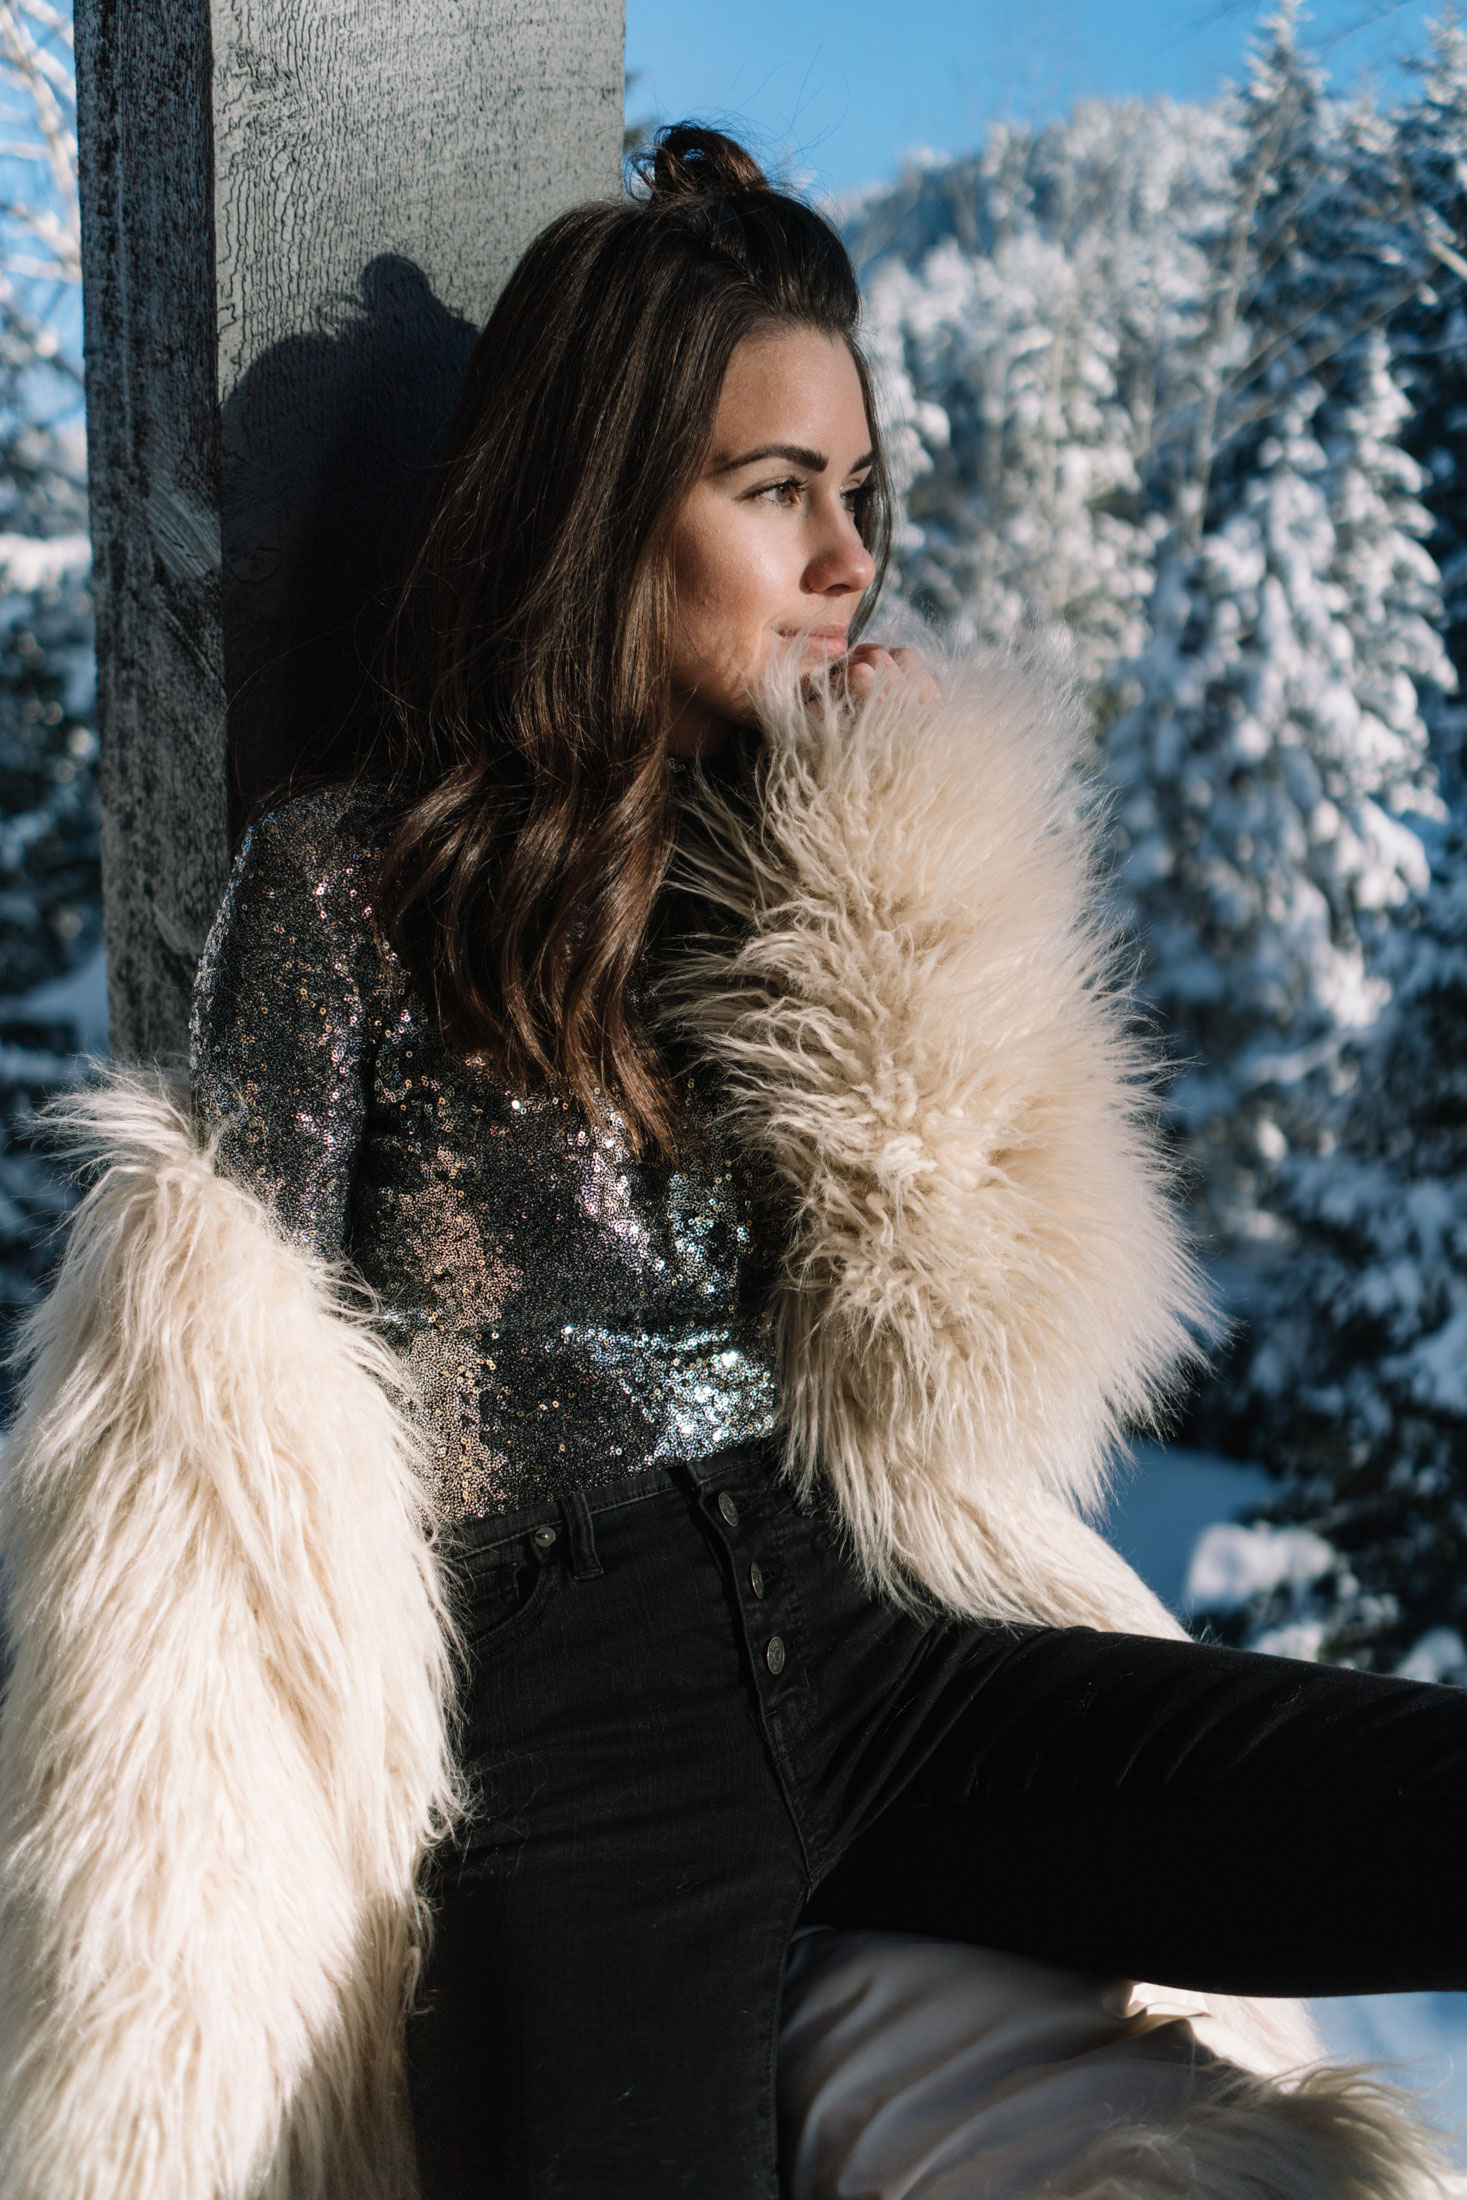 new years eve snow sequin fur outfit whistler6.jpg